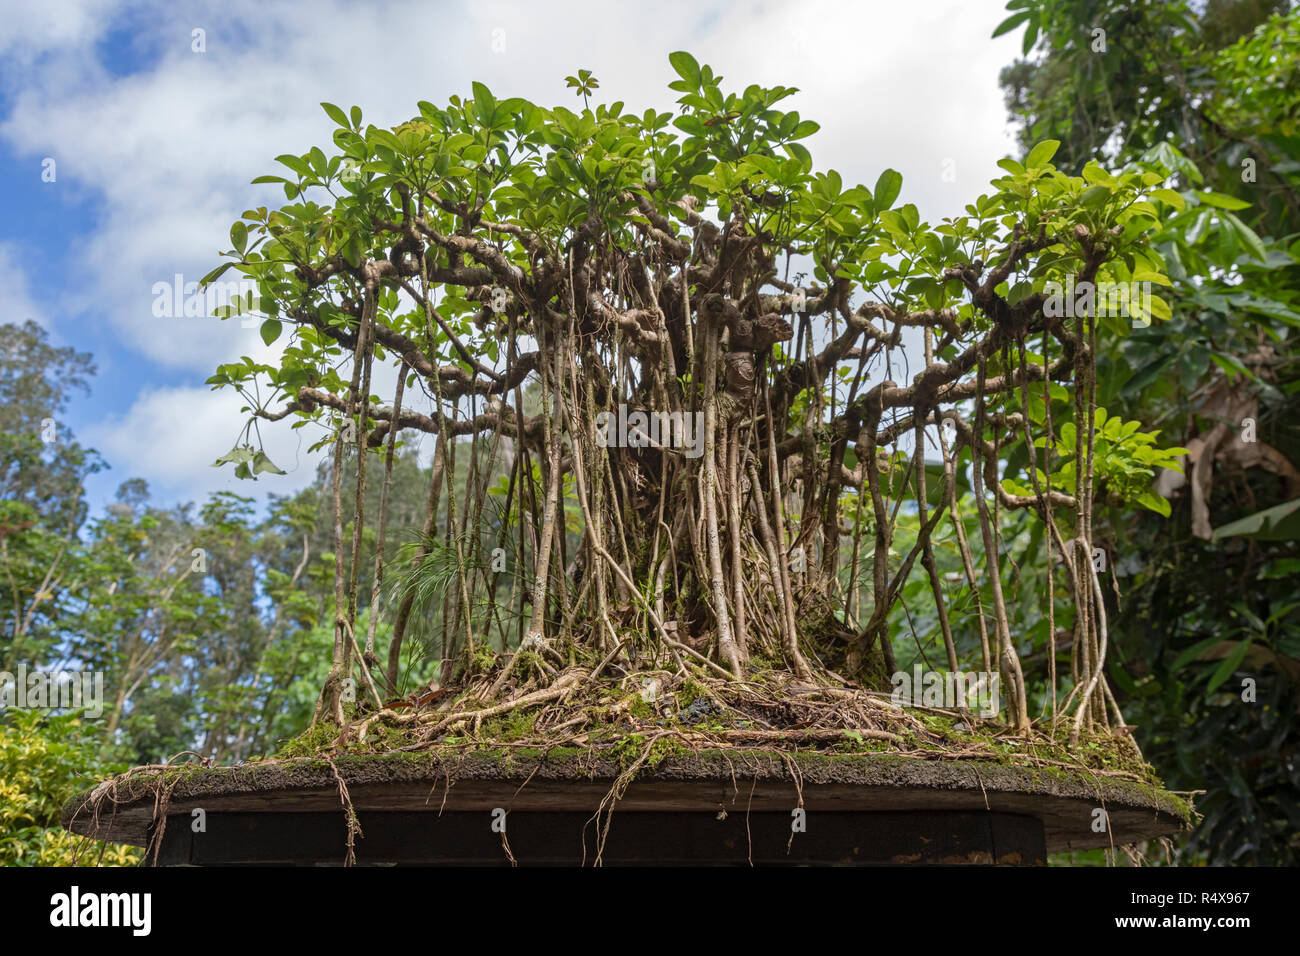 Kurtistown Hawaii A Dwarf Schefflera Bonsai In The Form Of A Banyan Tree At The Fuku Bonsai Cultural Center A Bonsai Nursery And Educational Cente Stock Photo Alamy